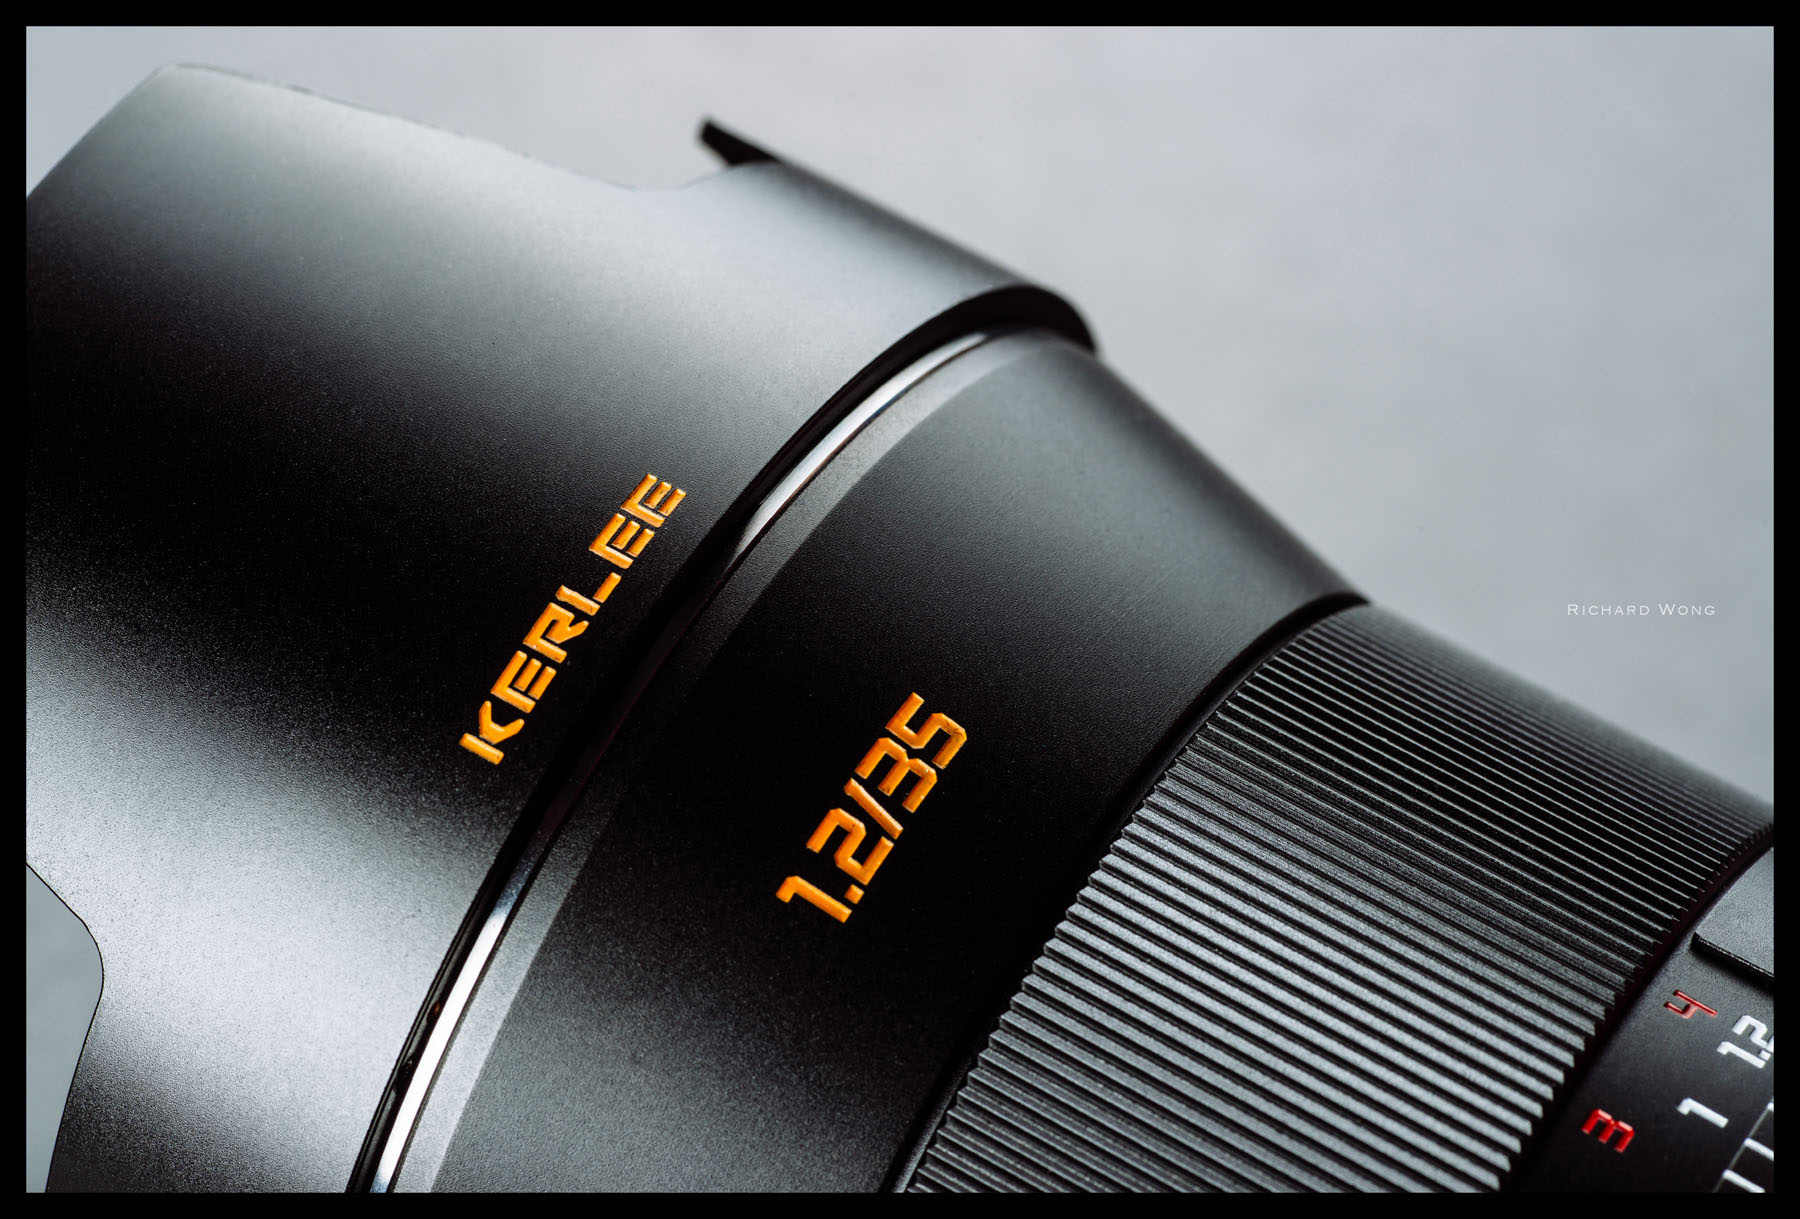 Kerlee-35mm-f1.2-review-41